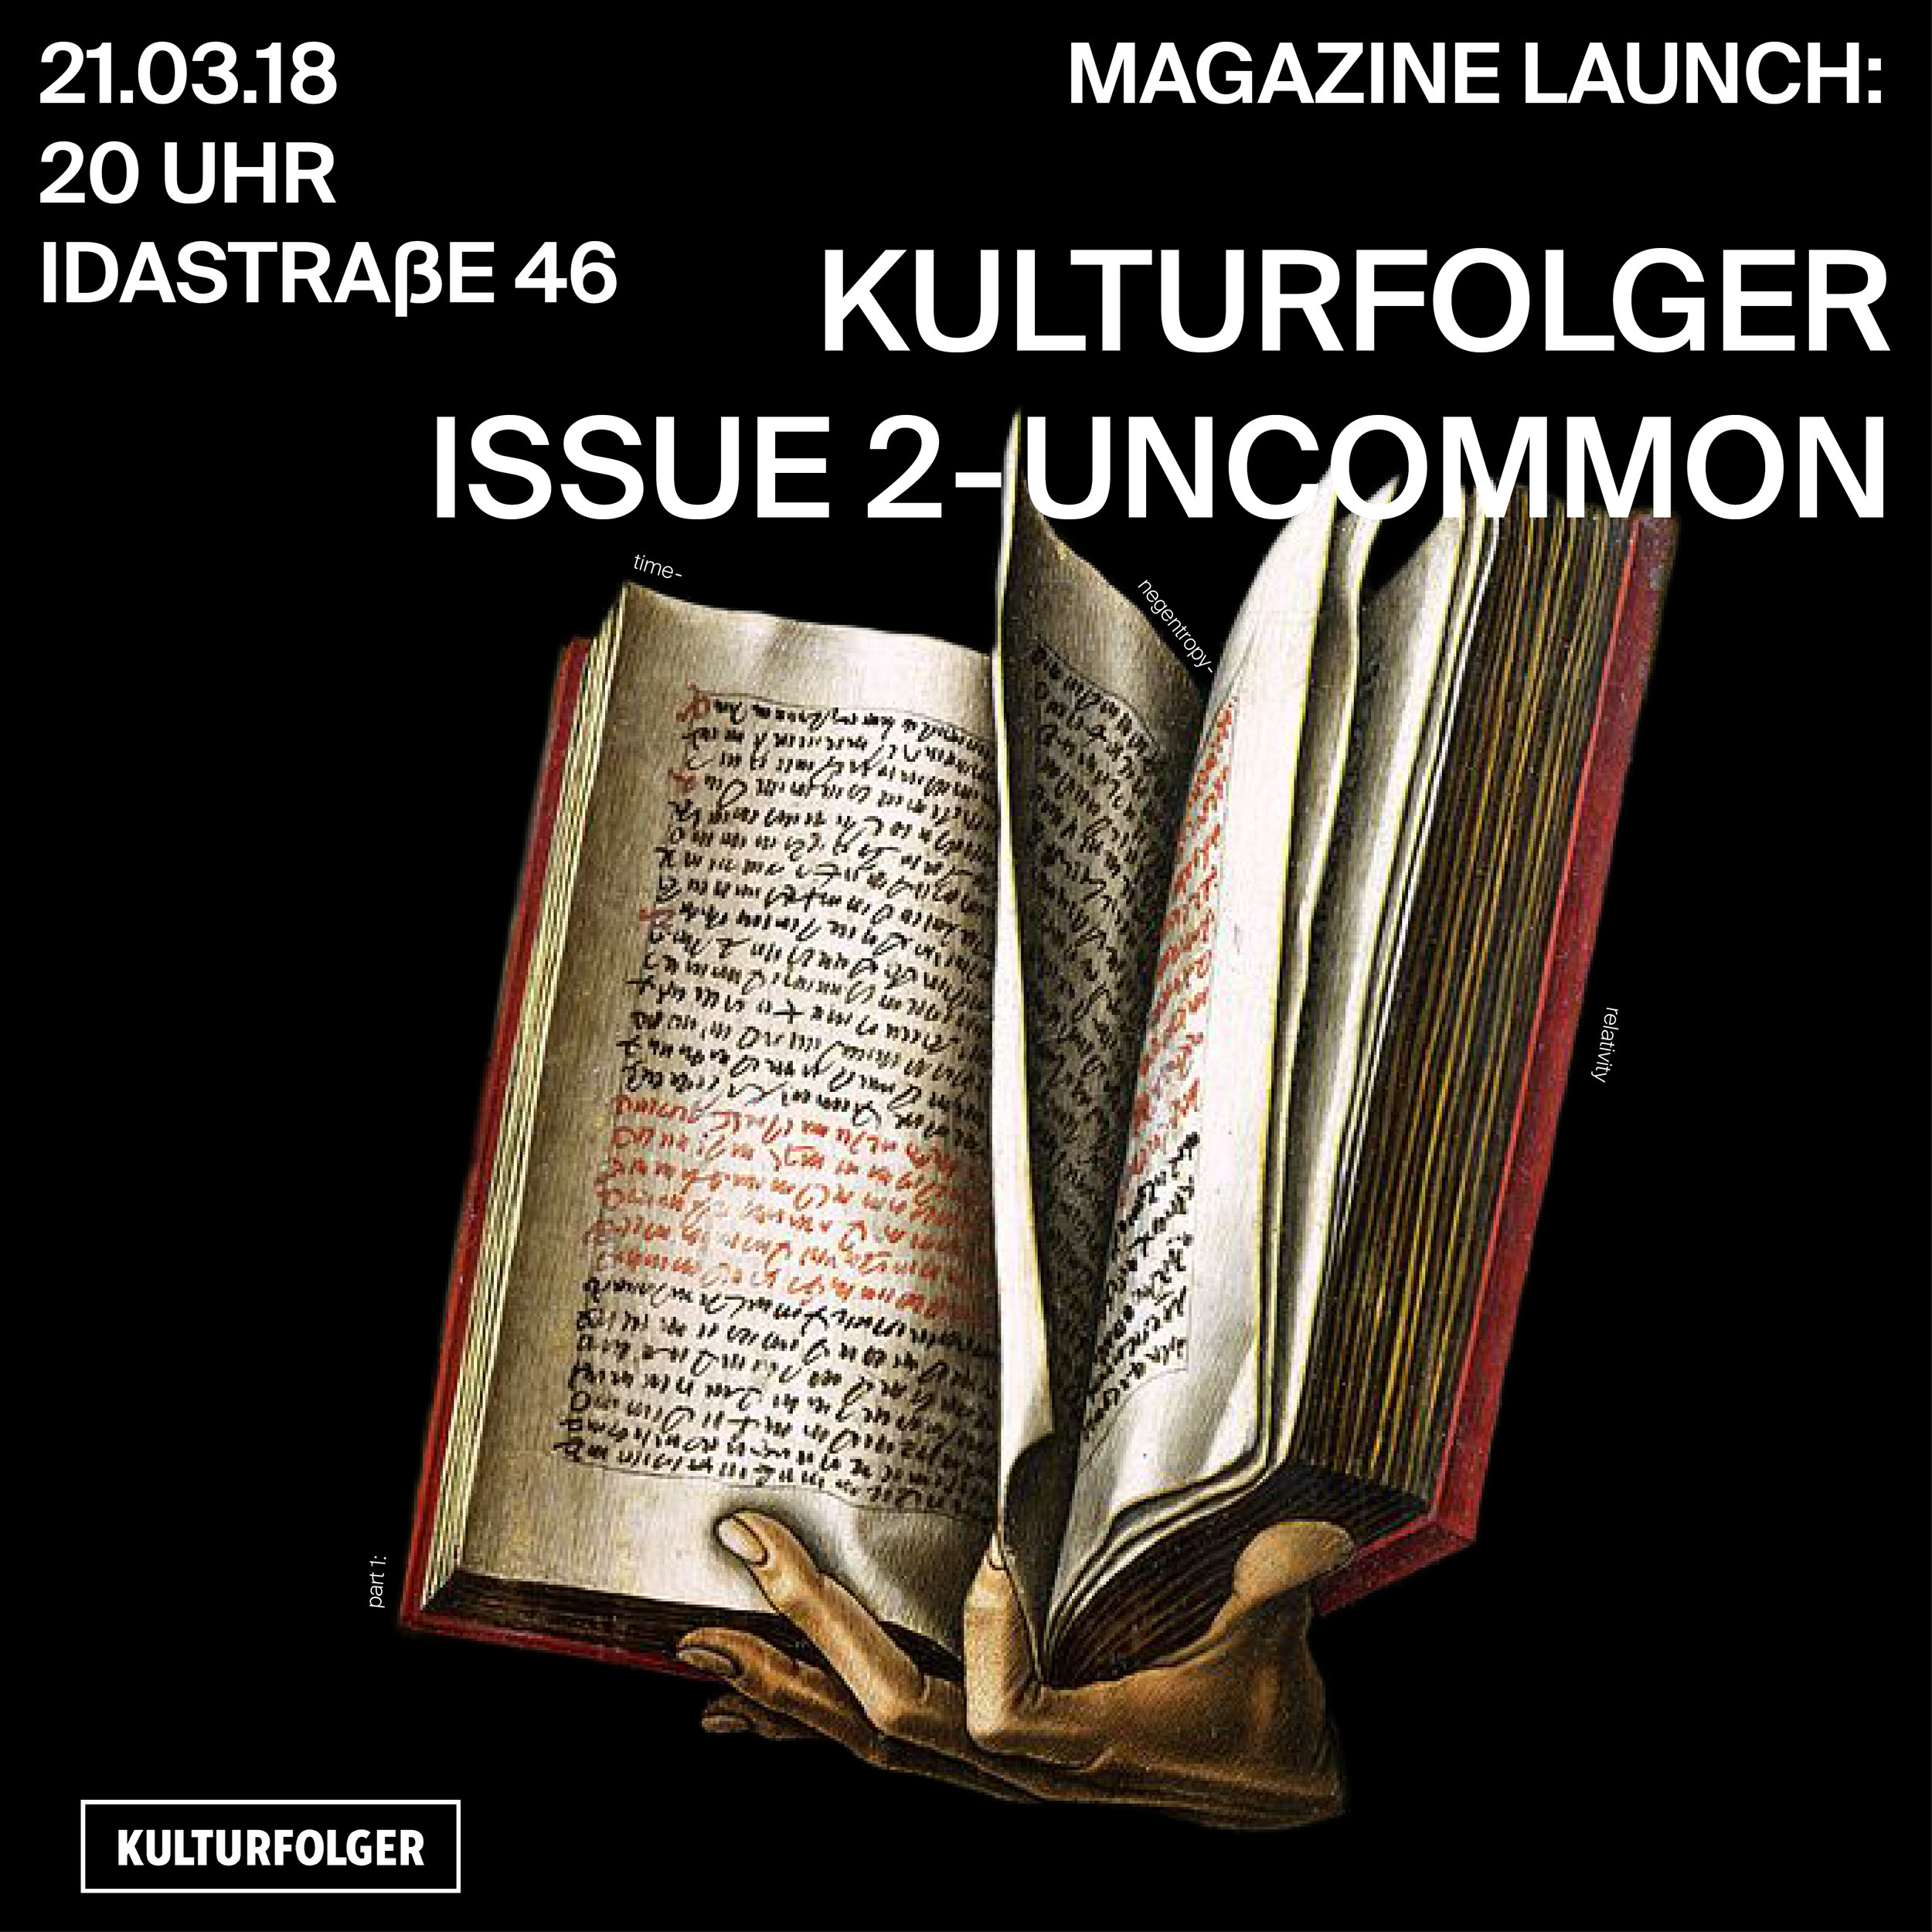 Making a publication shows a certain decadence that is suited to art. It needs to be abstraction, it is necessary to celebrate abundance, the beauty of the world, the beauty of the mind, in an uncommon way.  And we have finally made it - our long-awaited Issue 2 is finally out!  Contributions by: Baggenstos & Rudolf, Delphine Chapuis-Schmitz, Piero Good, Roxy Grand, huber.huber, Dominic Oppliger, Catherine Schelbert, David Schildberger  Graphic Design: Martin Mur  - Join us for a talk, poetry reading, insect tasting, and a dancing night!  20:00 - Talk: Murmuring Uncommon - 20:30 - Reading:  Delphine Chapuis-Schmitz Roxy Grand Dominic Oppliger David Schildberger - Insect Apéro! - After 21:00 - smooth dj tunes